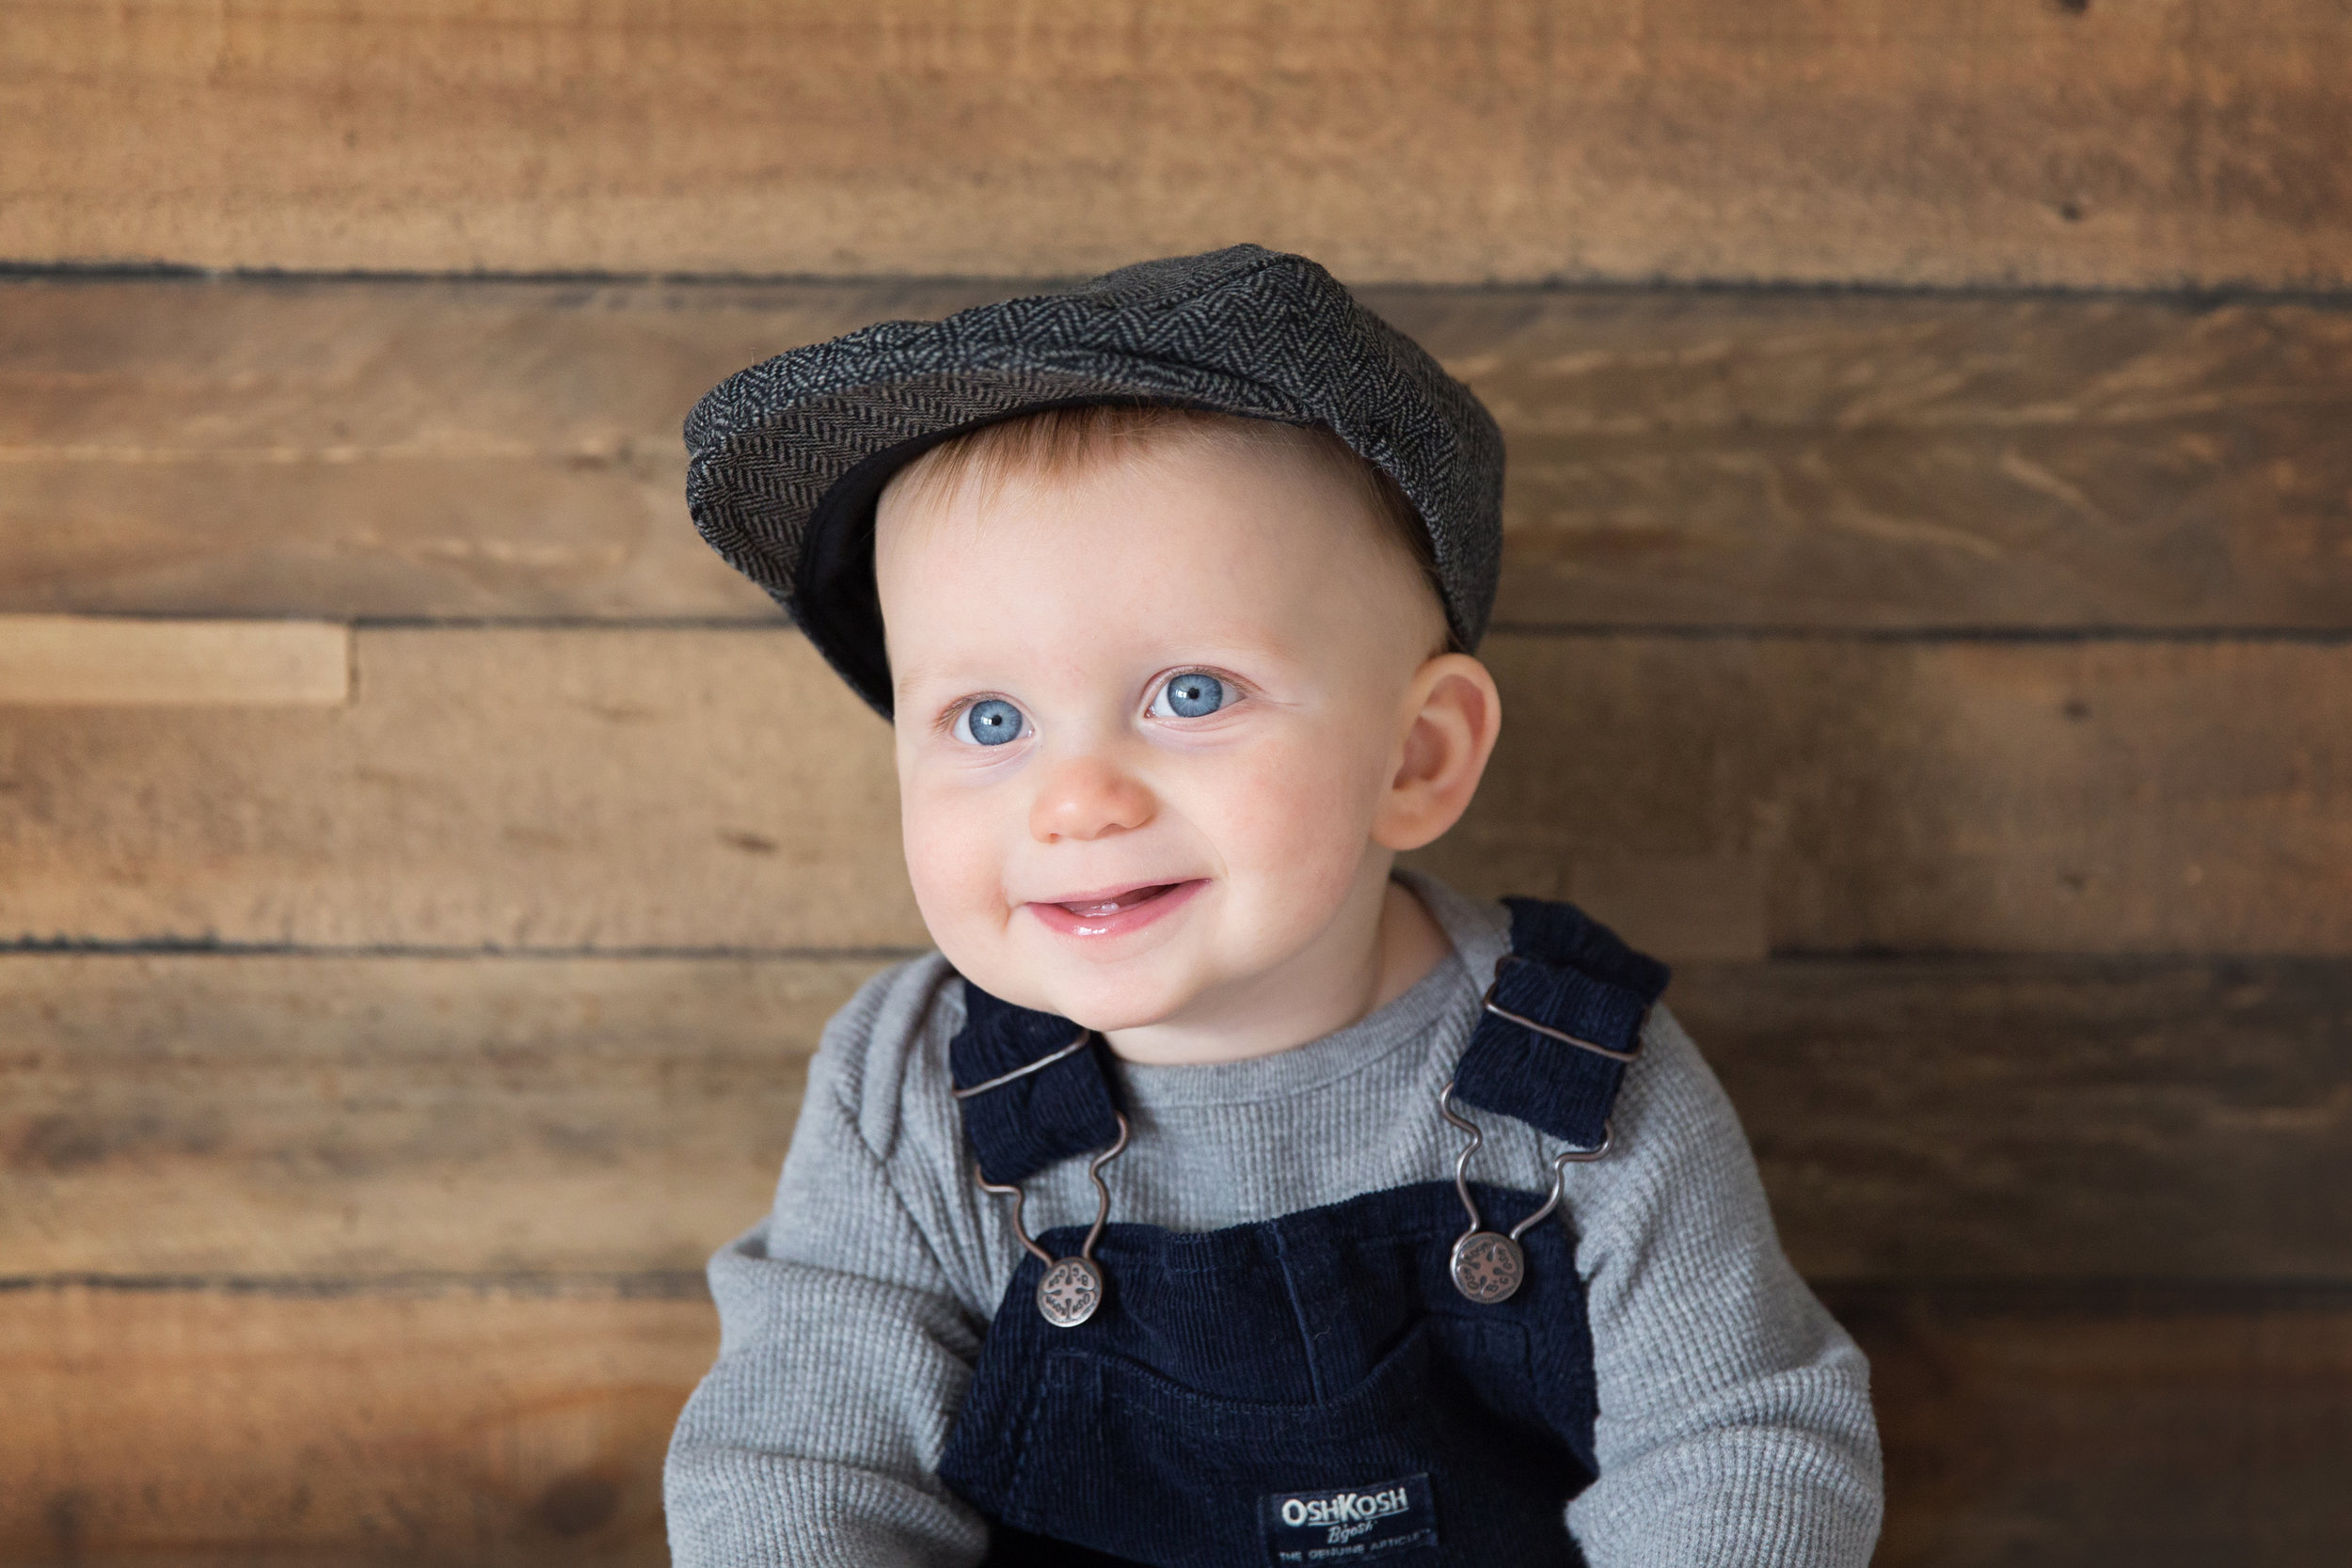 Baby boy is sitting and smiling in a cute hat. Calgary photographer. Milashka photography